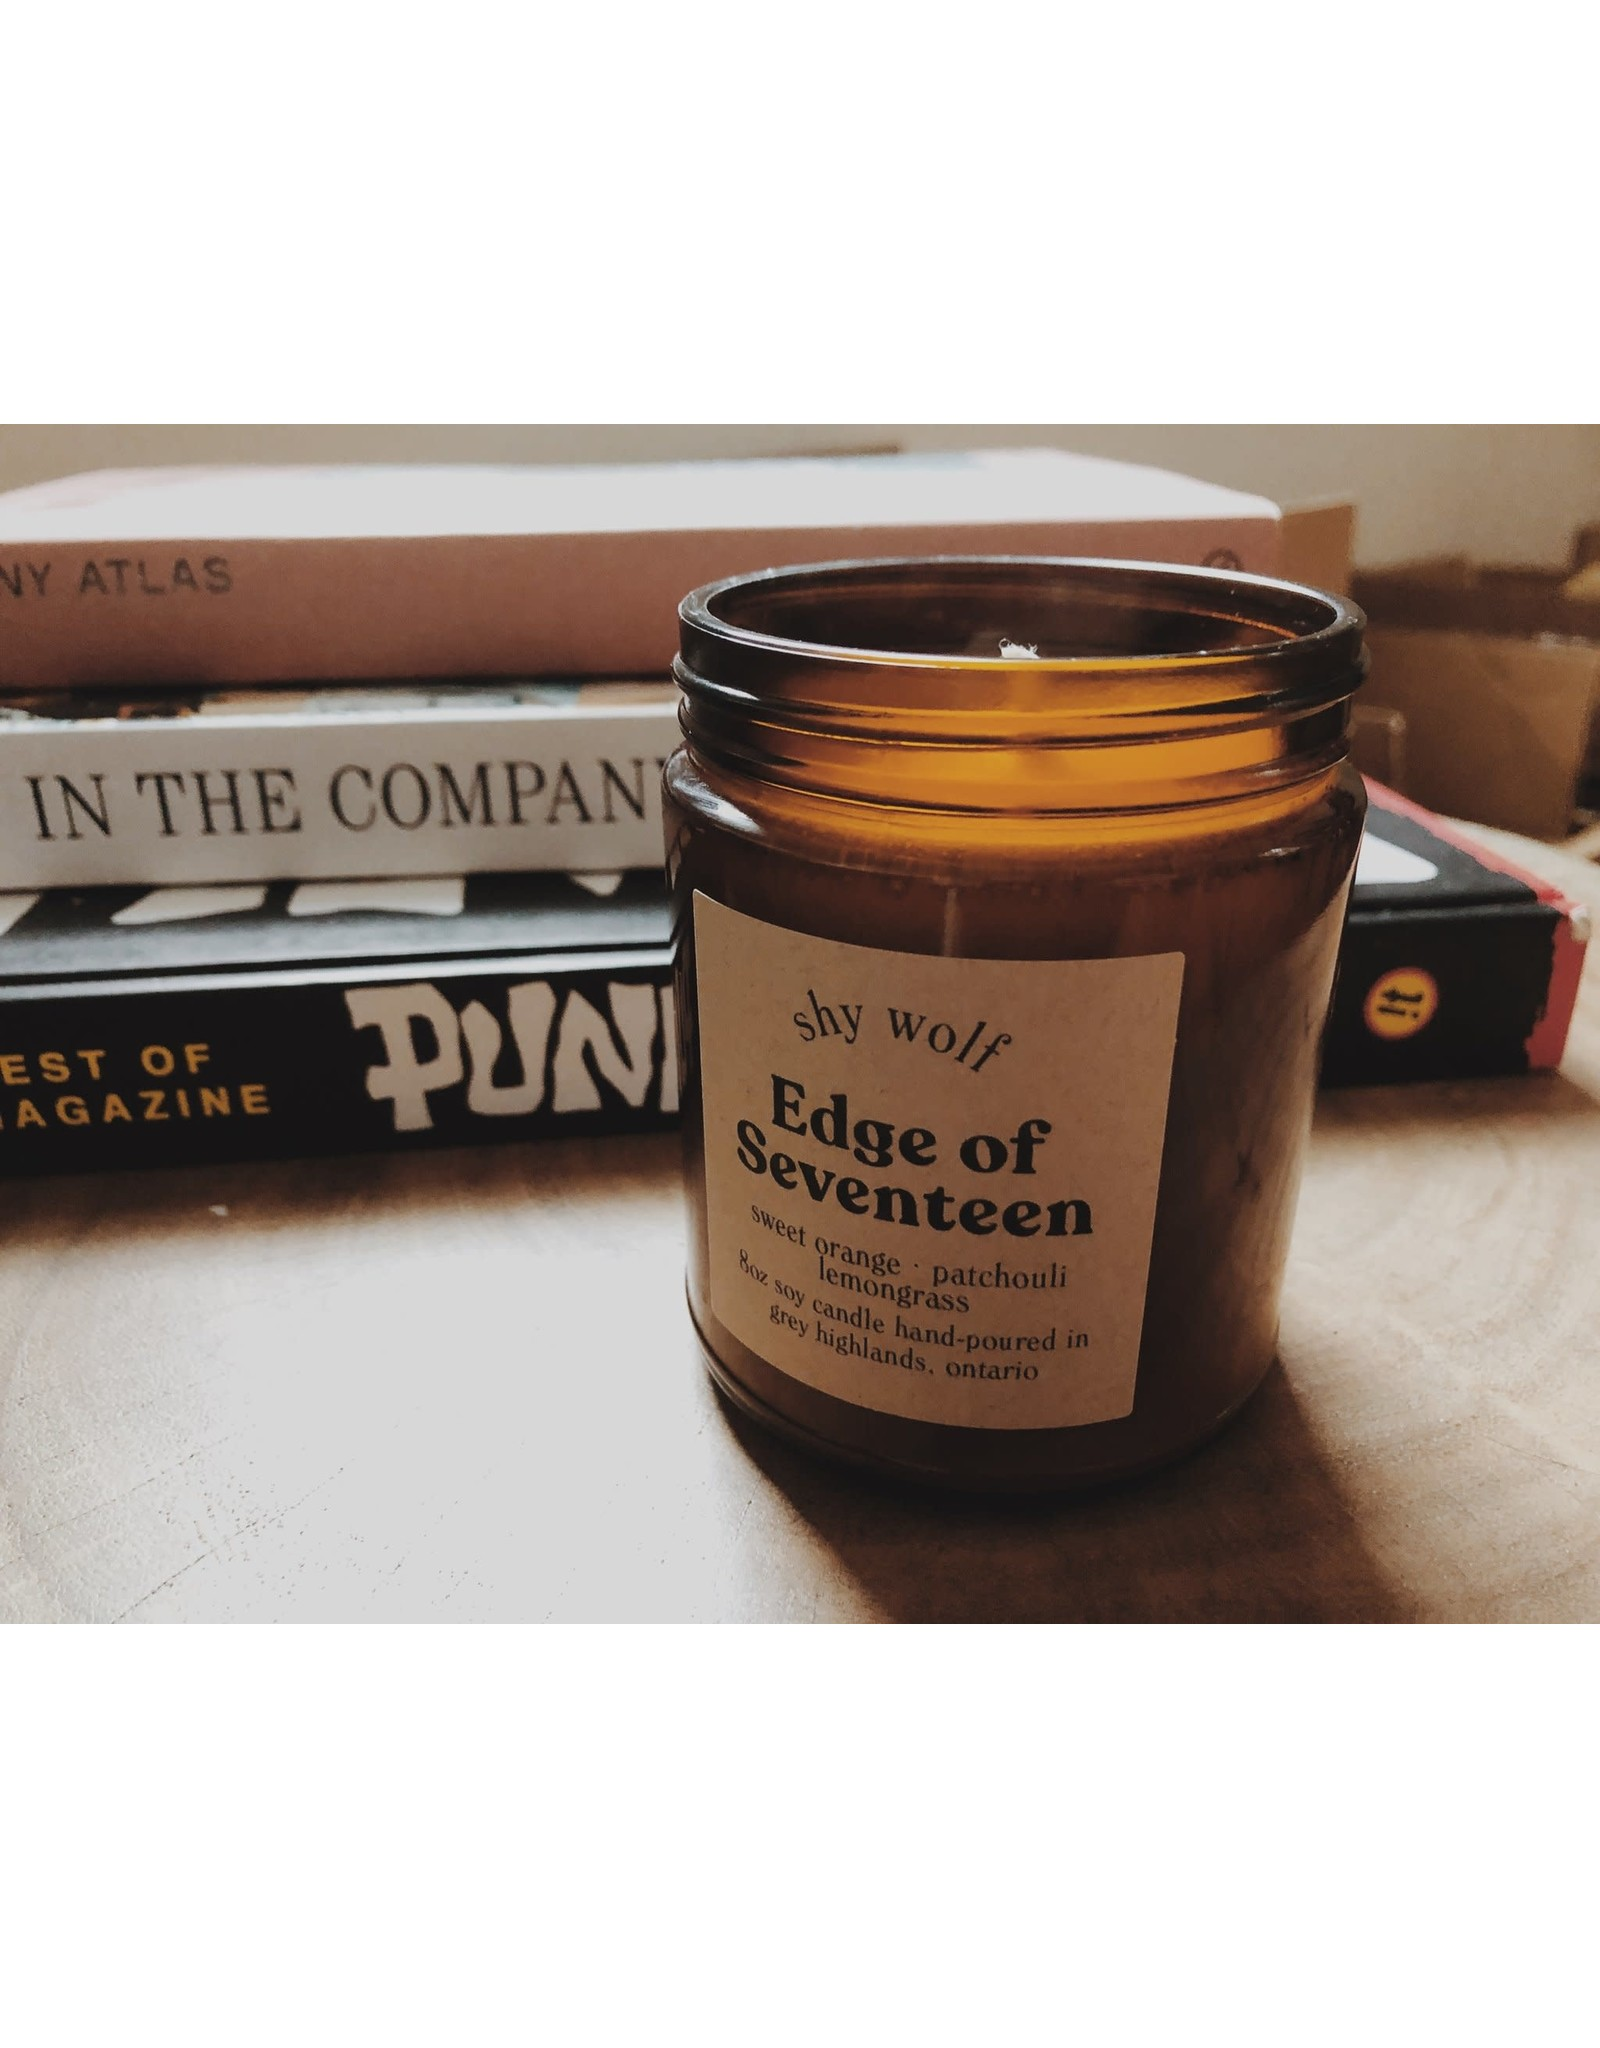 Shy Wolf - Edge of Seventeen Candle 8 oz